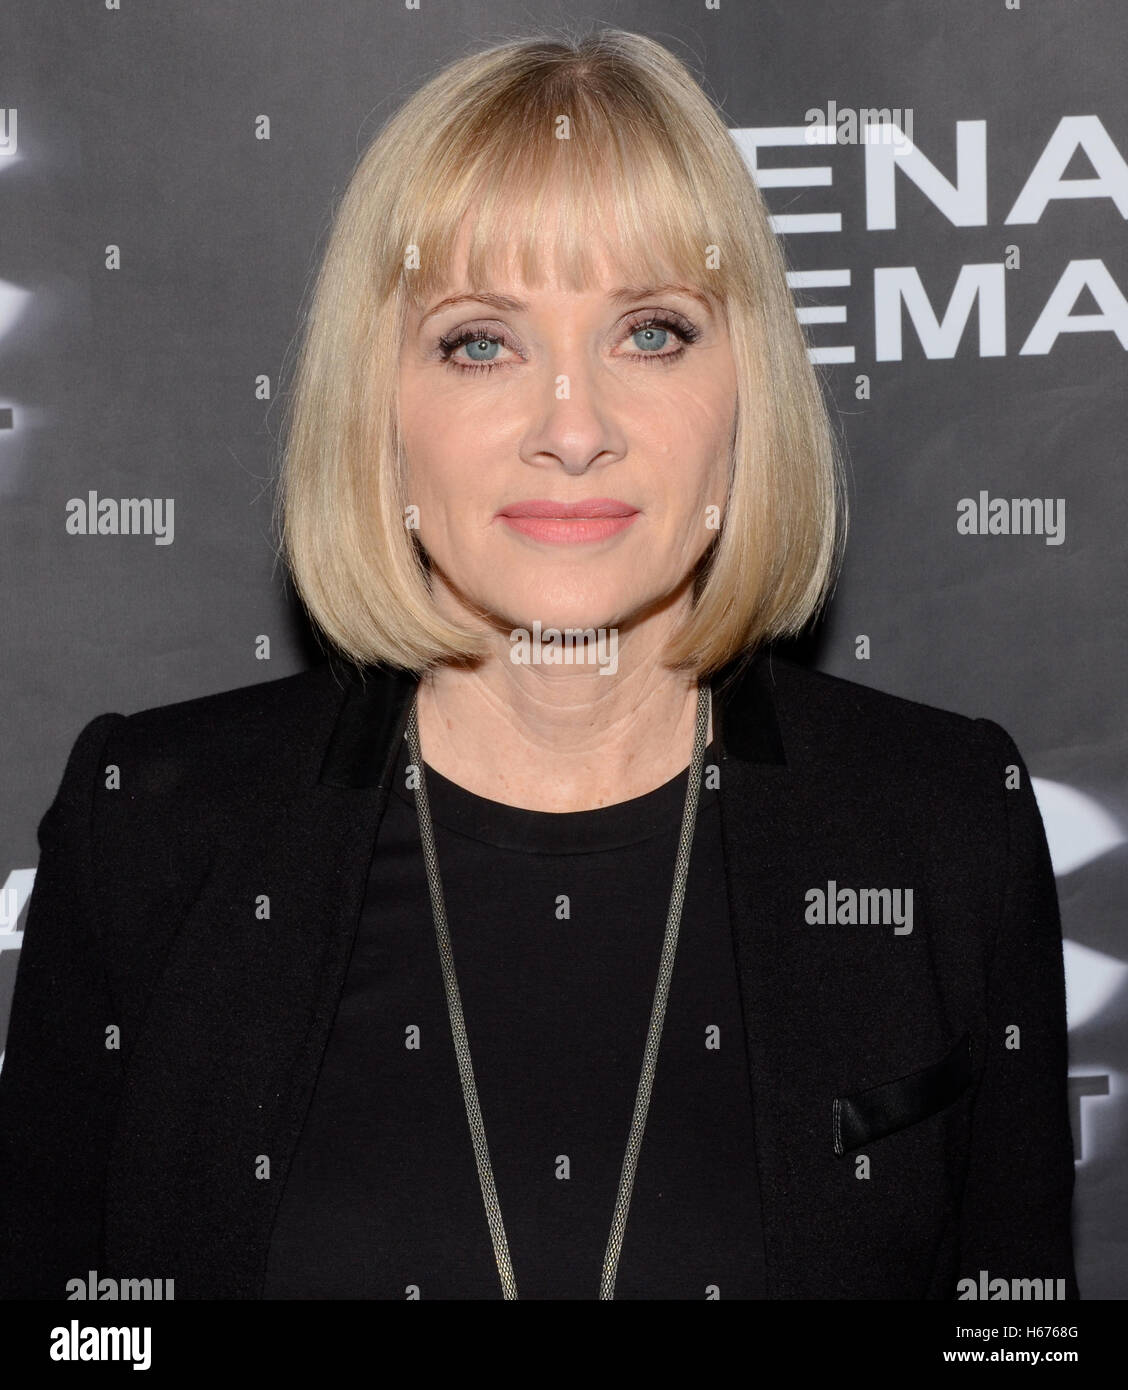 Watch Barbara Crampton video